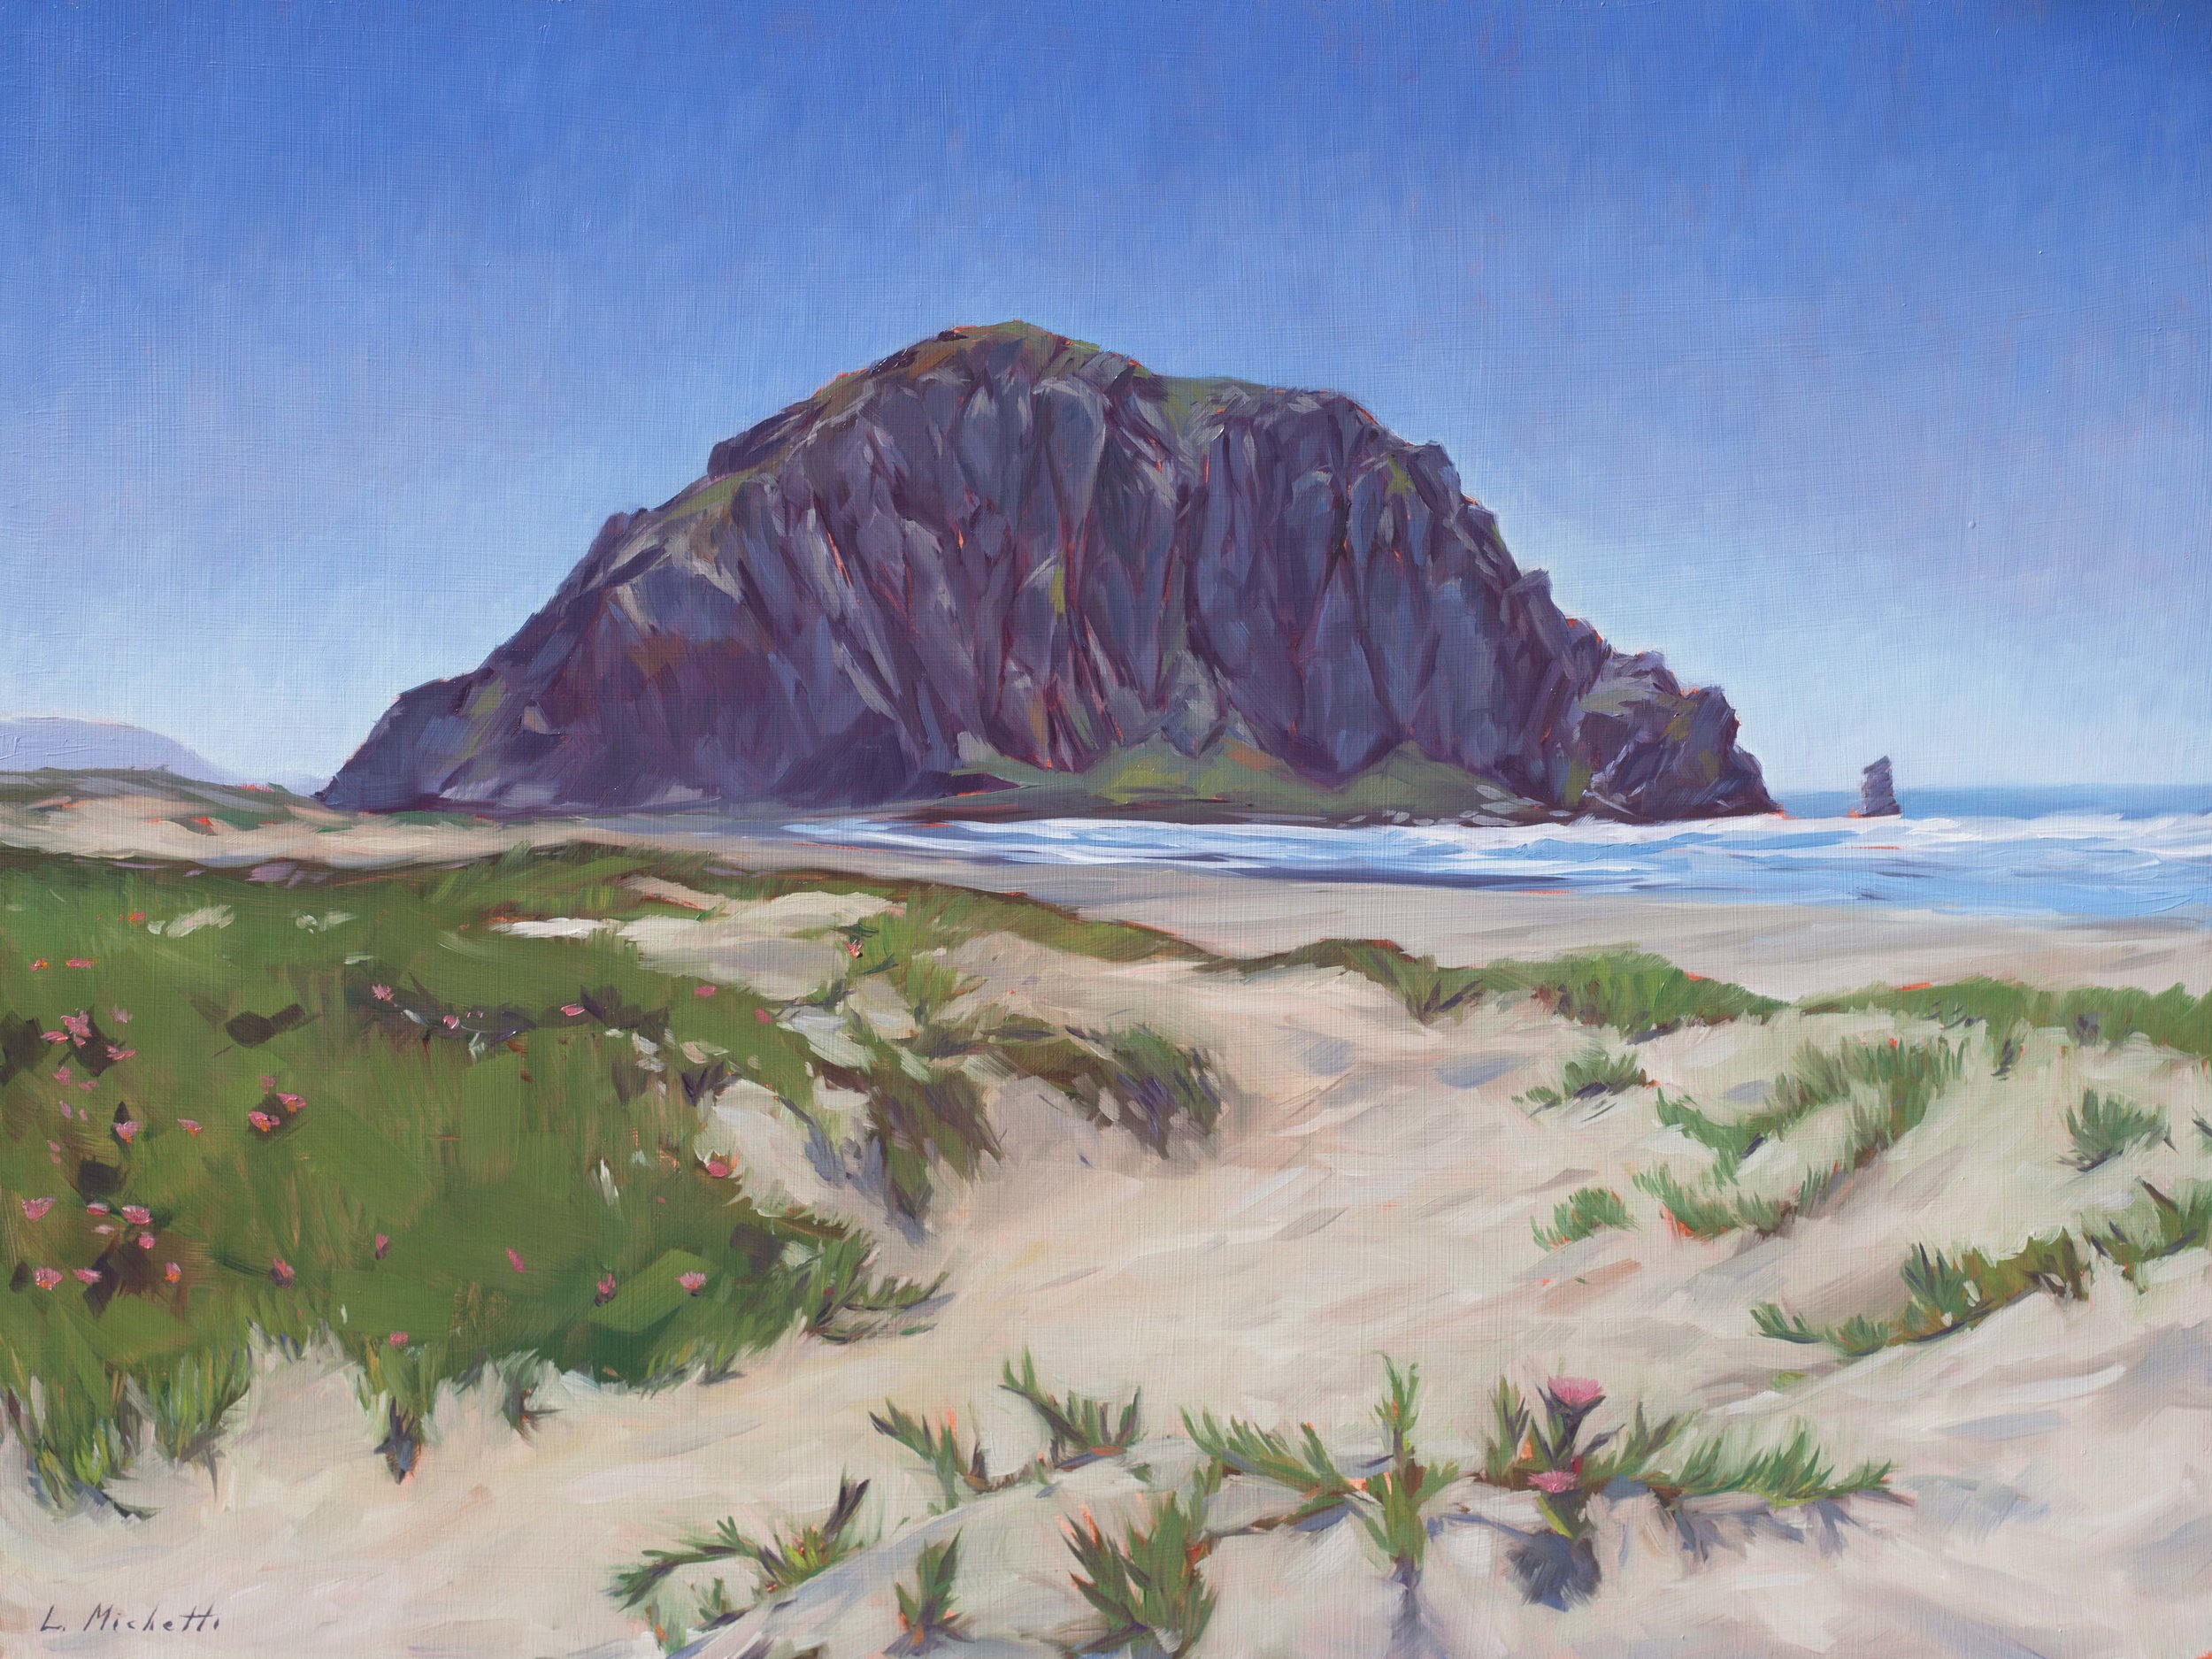 Morro Rock - 18x24 - Michetti.jpg